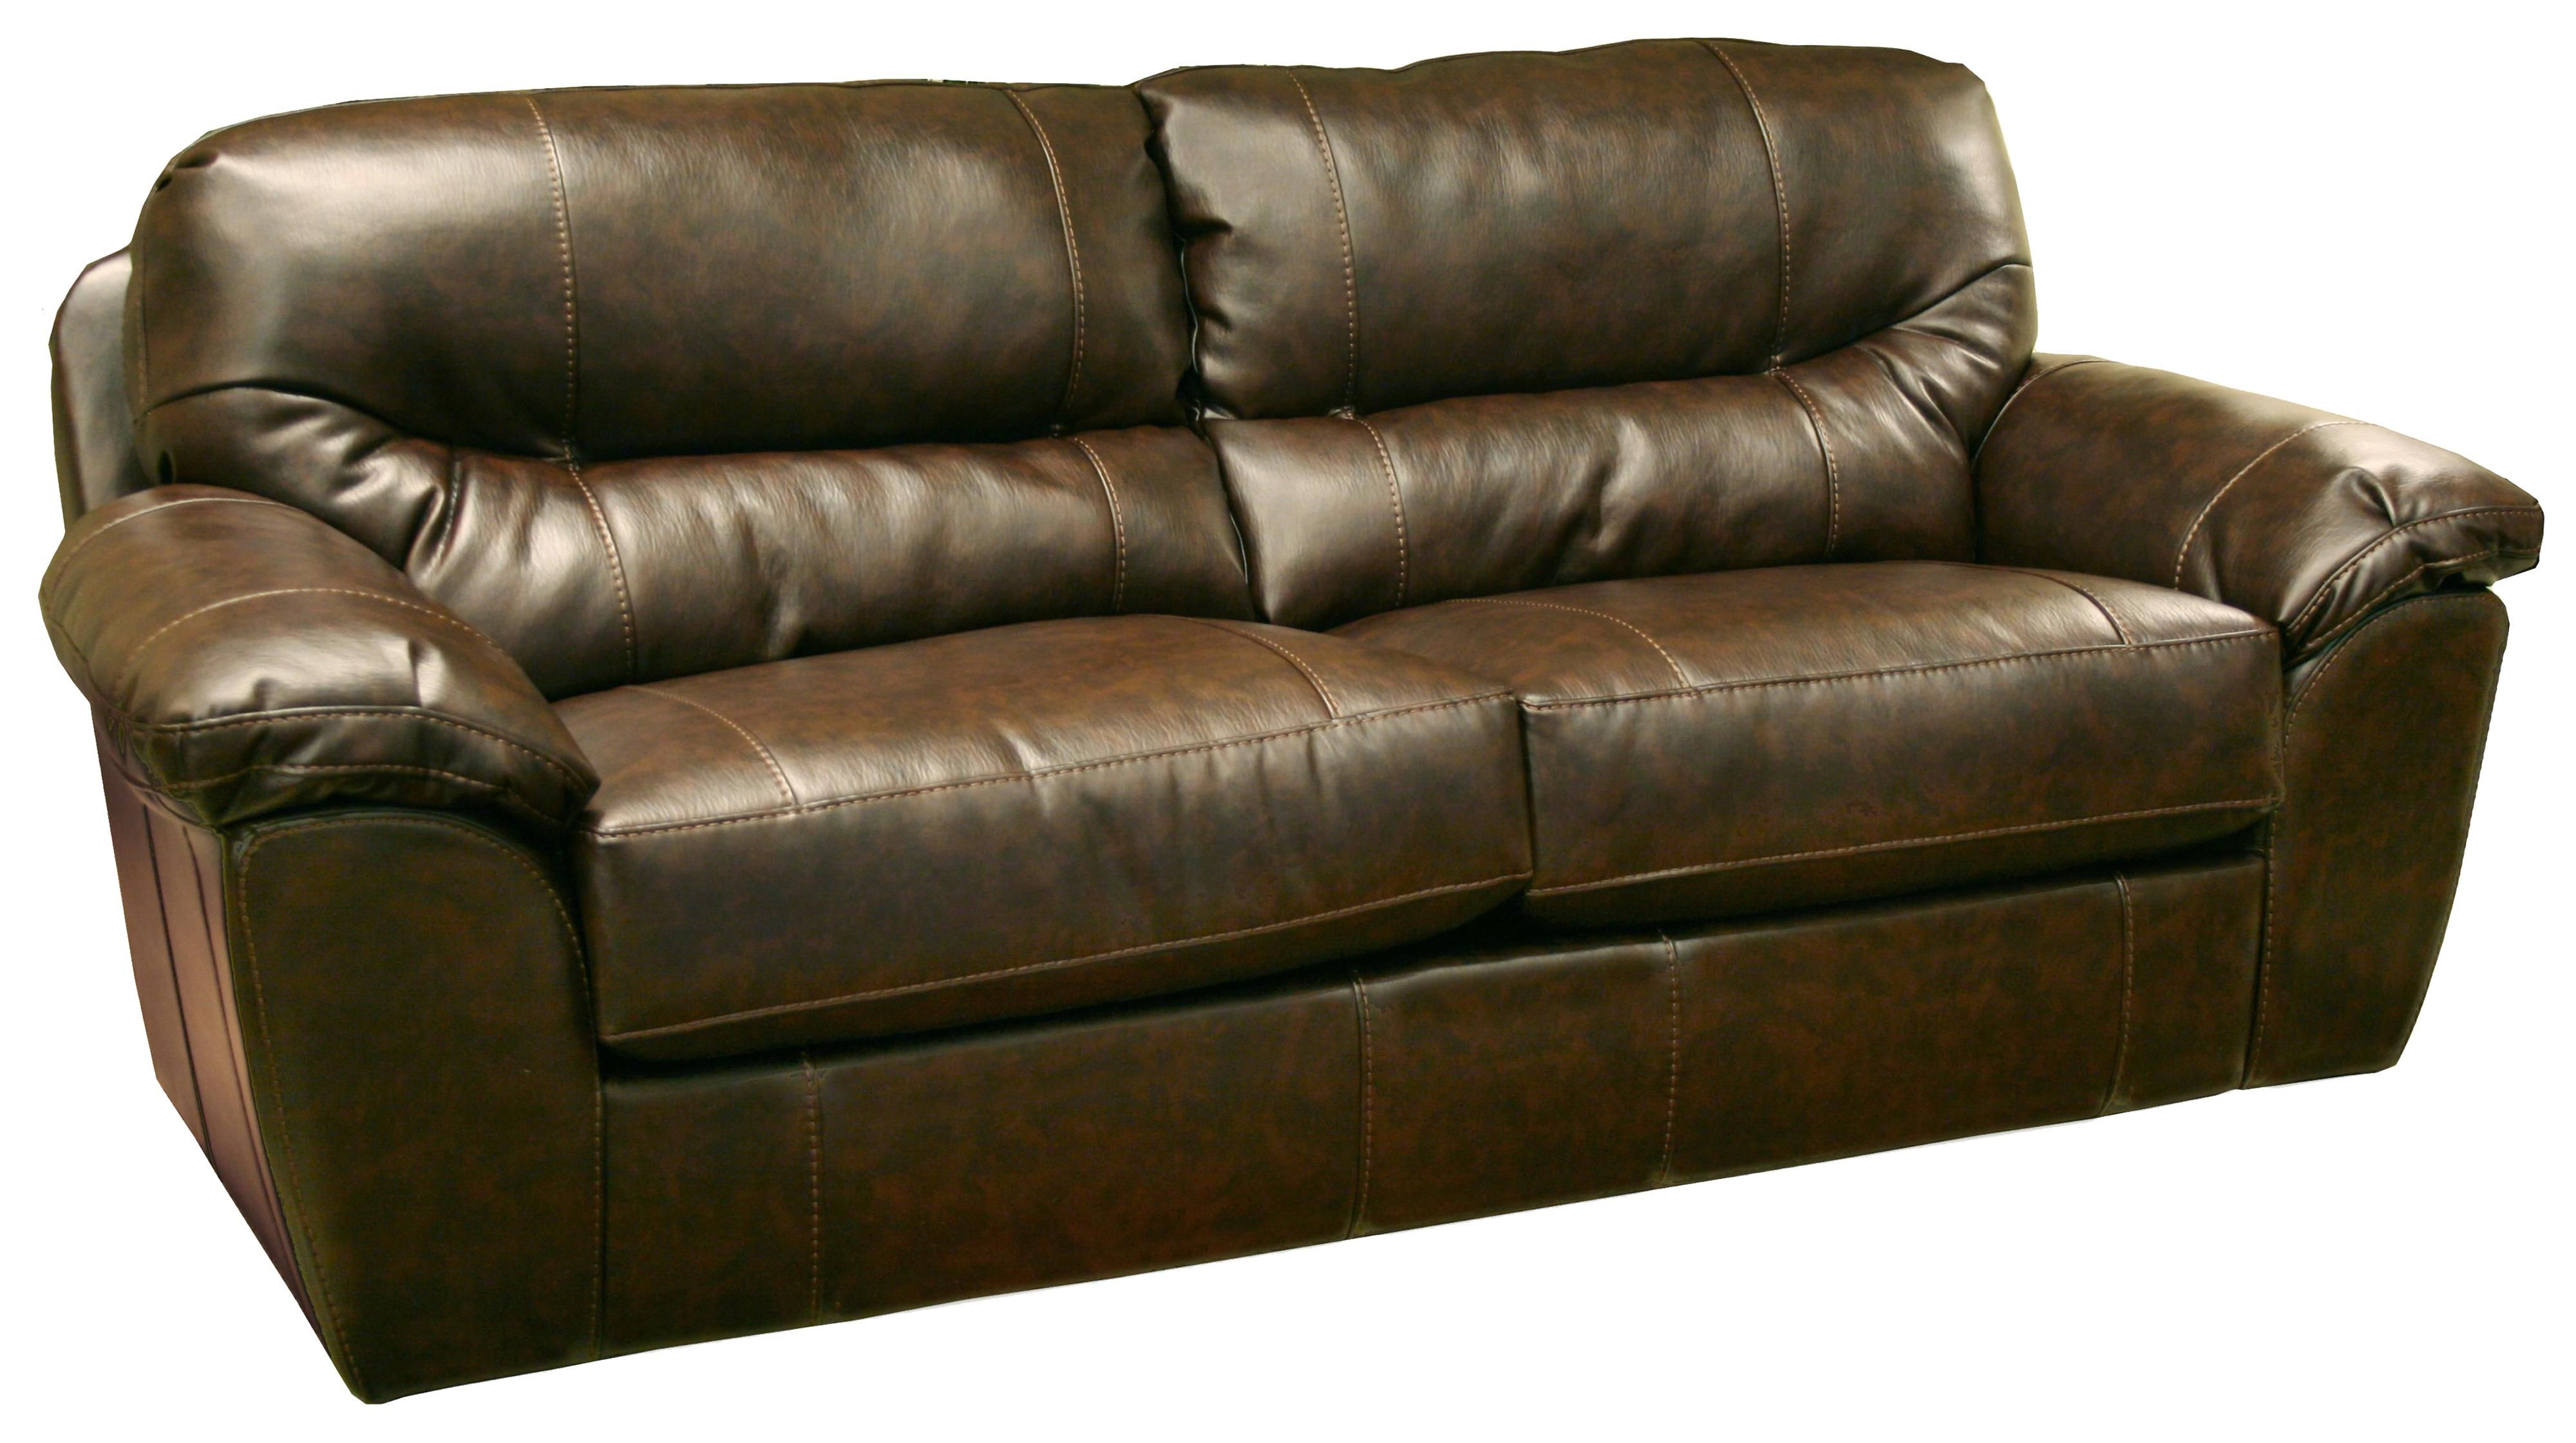 Brantley Sofa Sleeper By Jackson Furniture Faux Leather Sofa